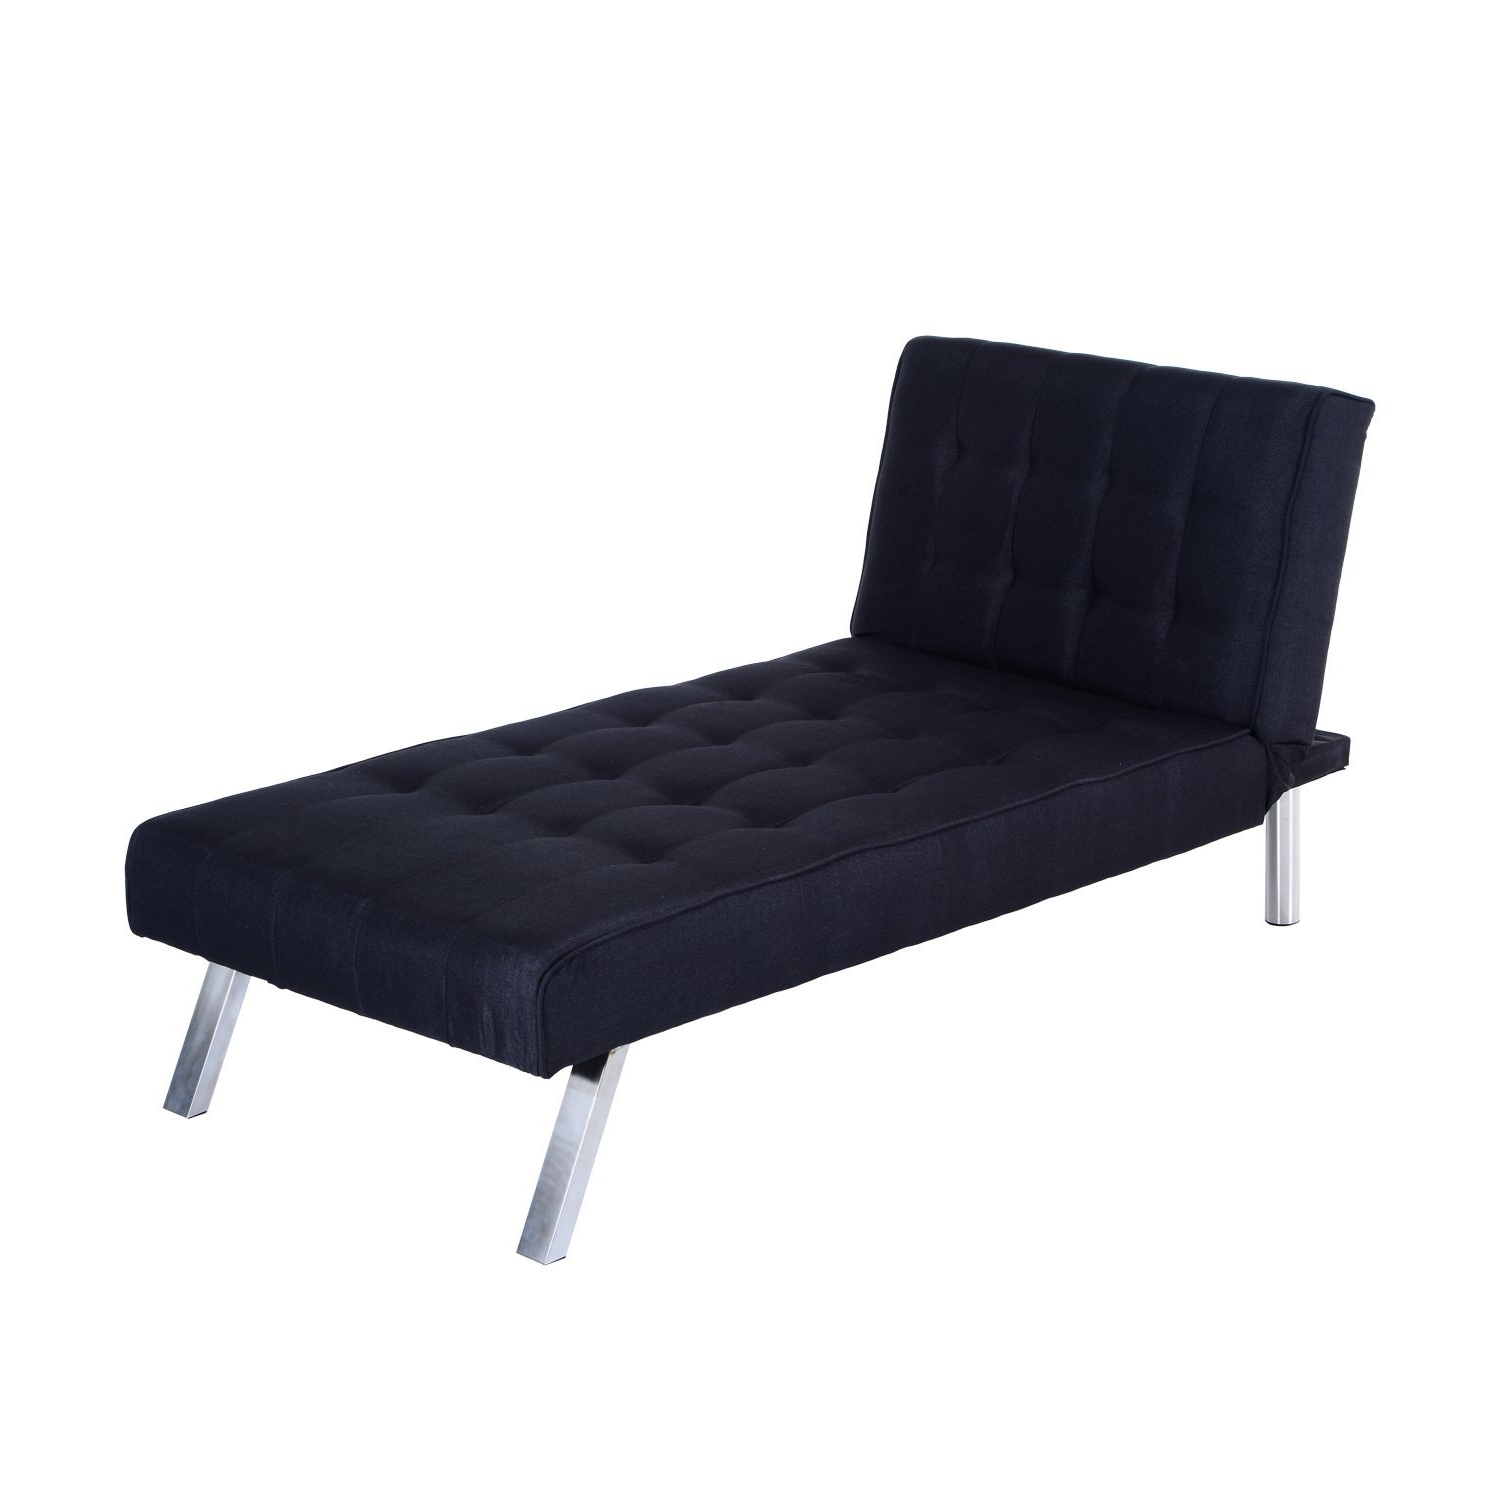 "Most Recently Released Amazon: Homcom 70"" Modern Reclining Chaise Lounge Sleeper Sofa With Regard To Reclining Chaise Lounges (View 7 of 15)"